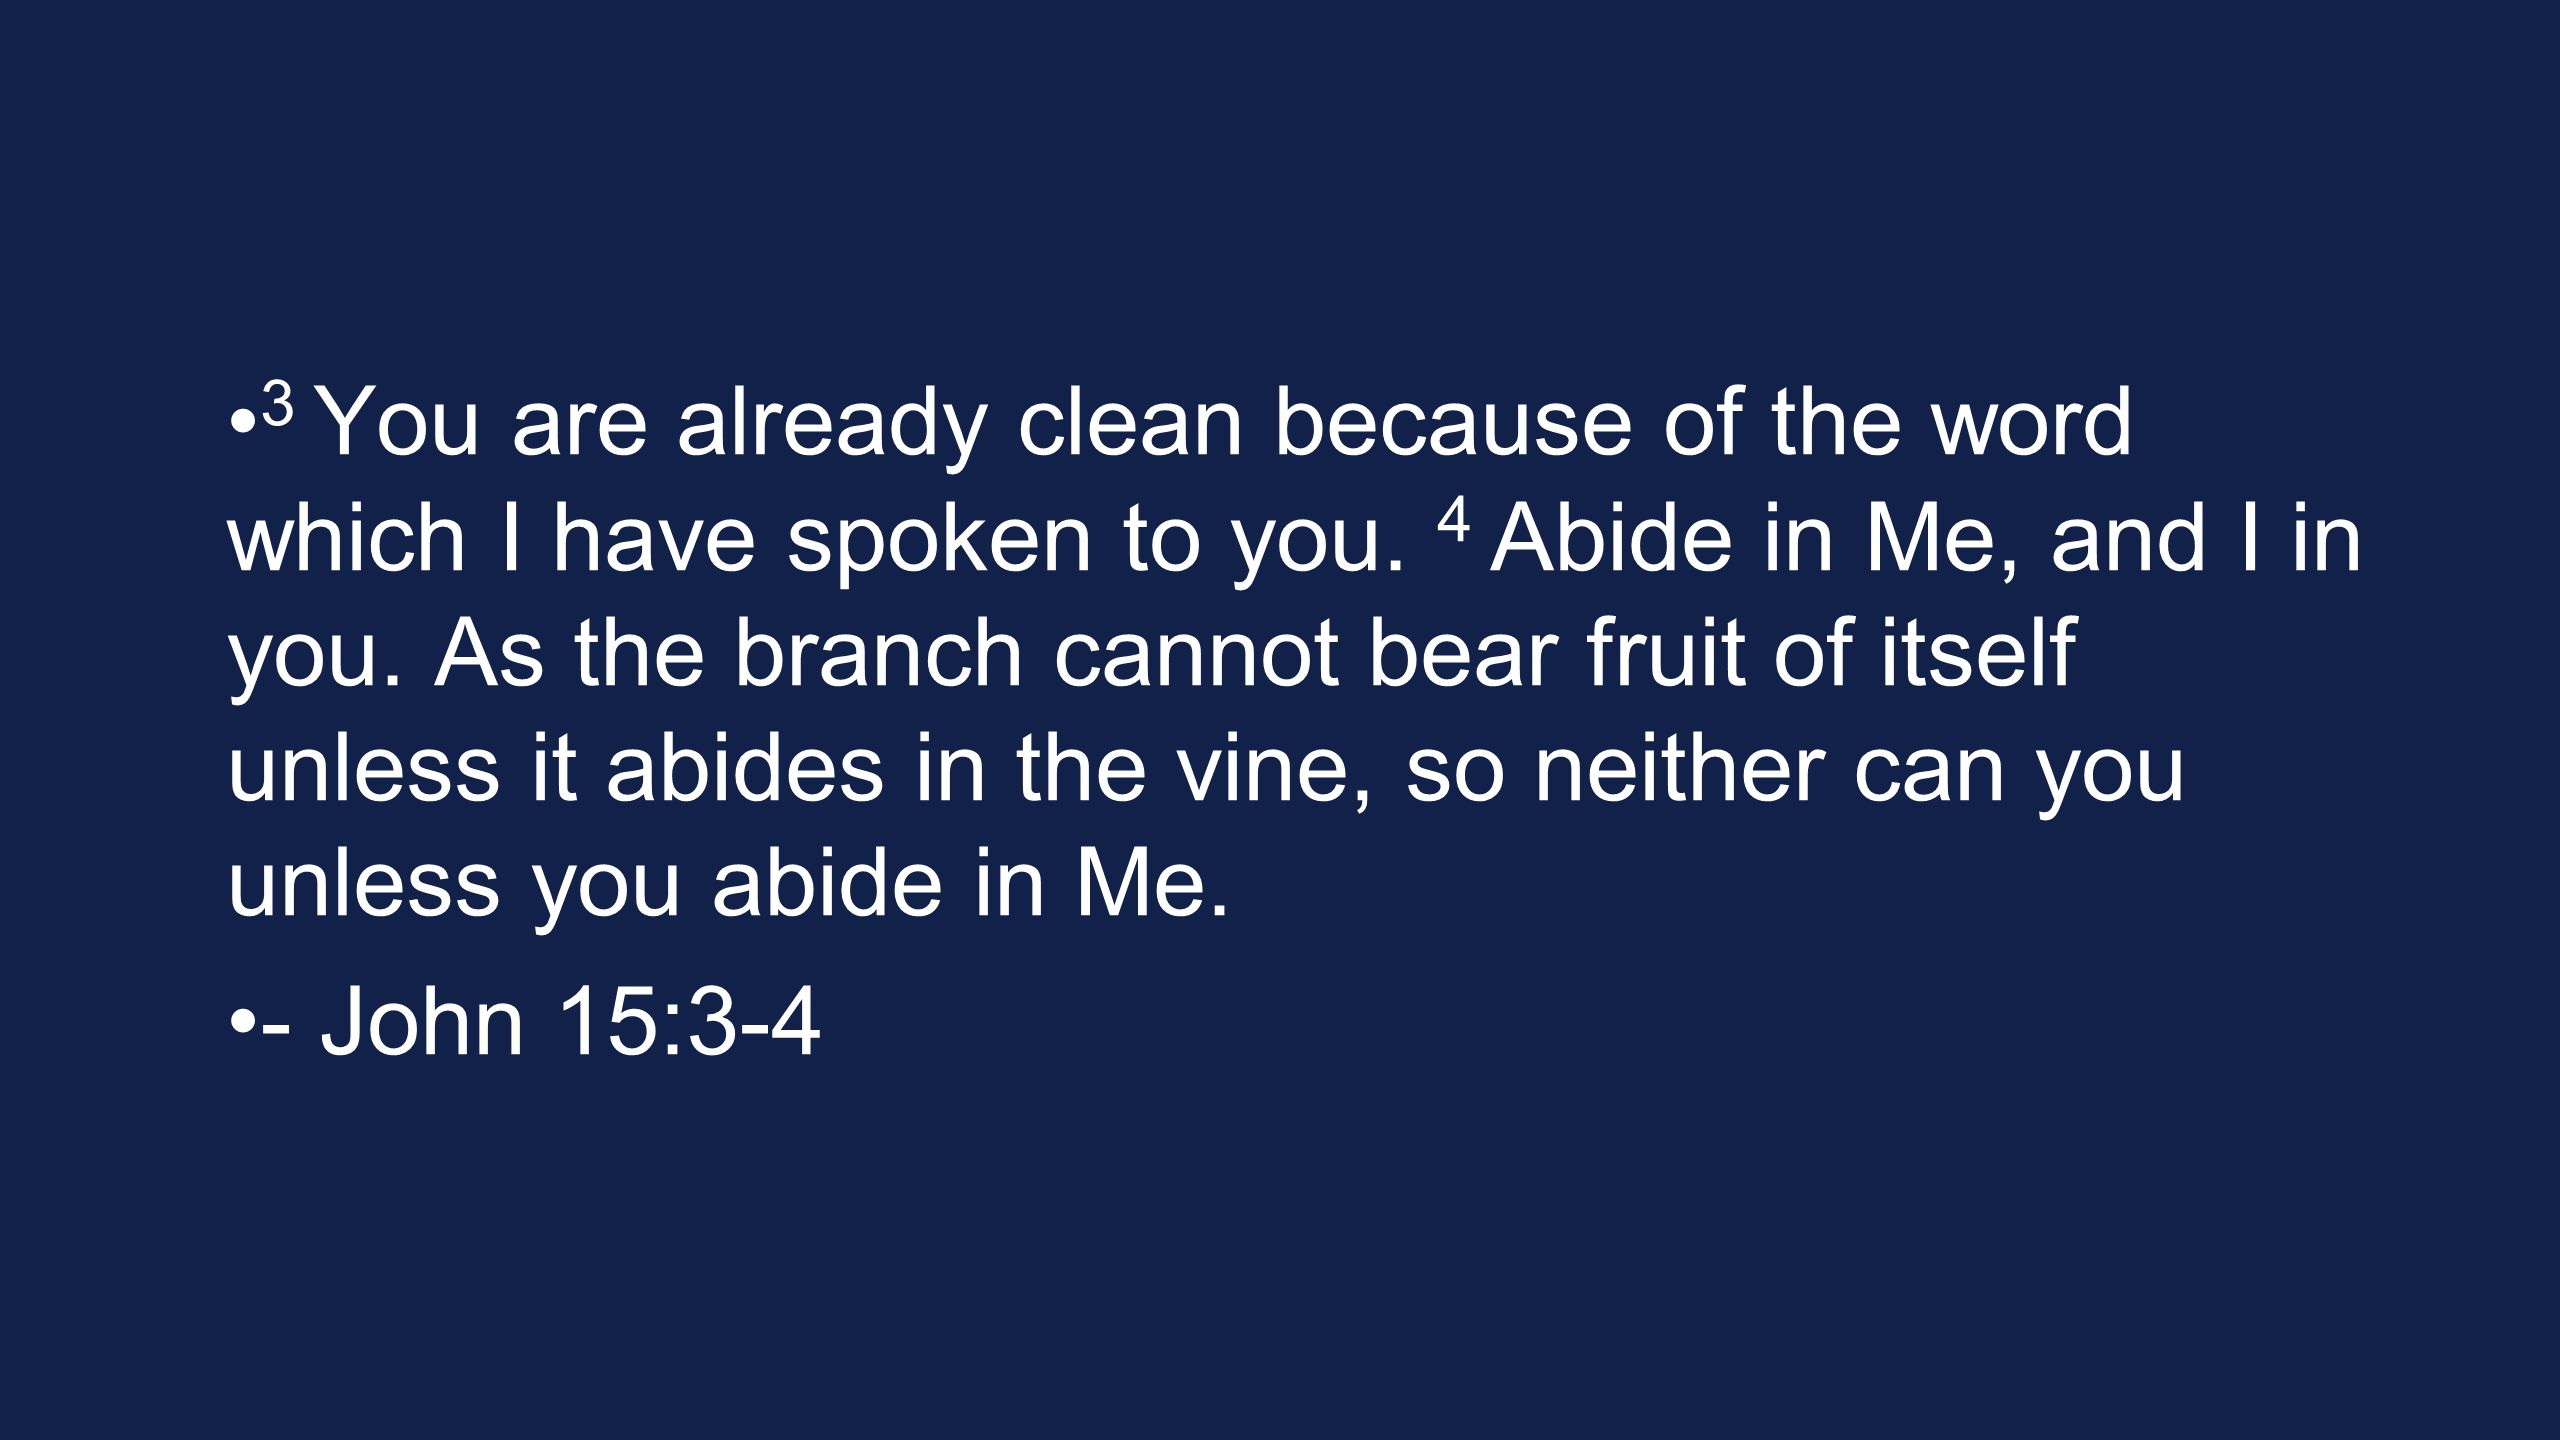 3 You are already clean because of the word which I have spoken to you.